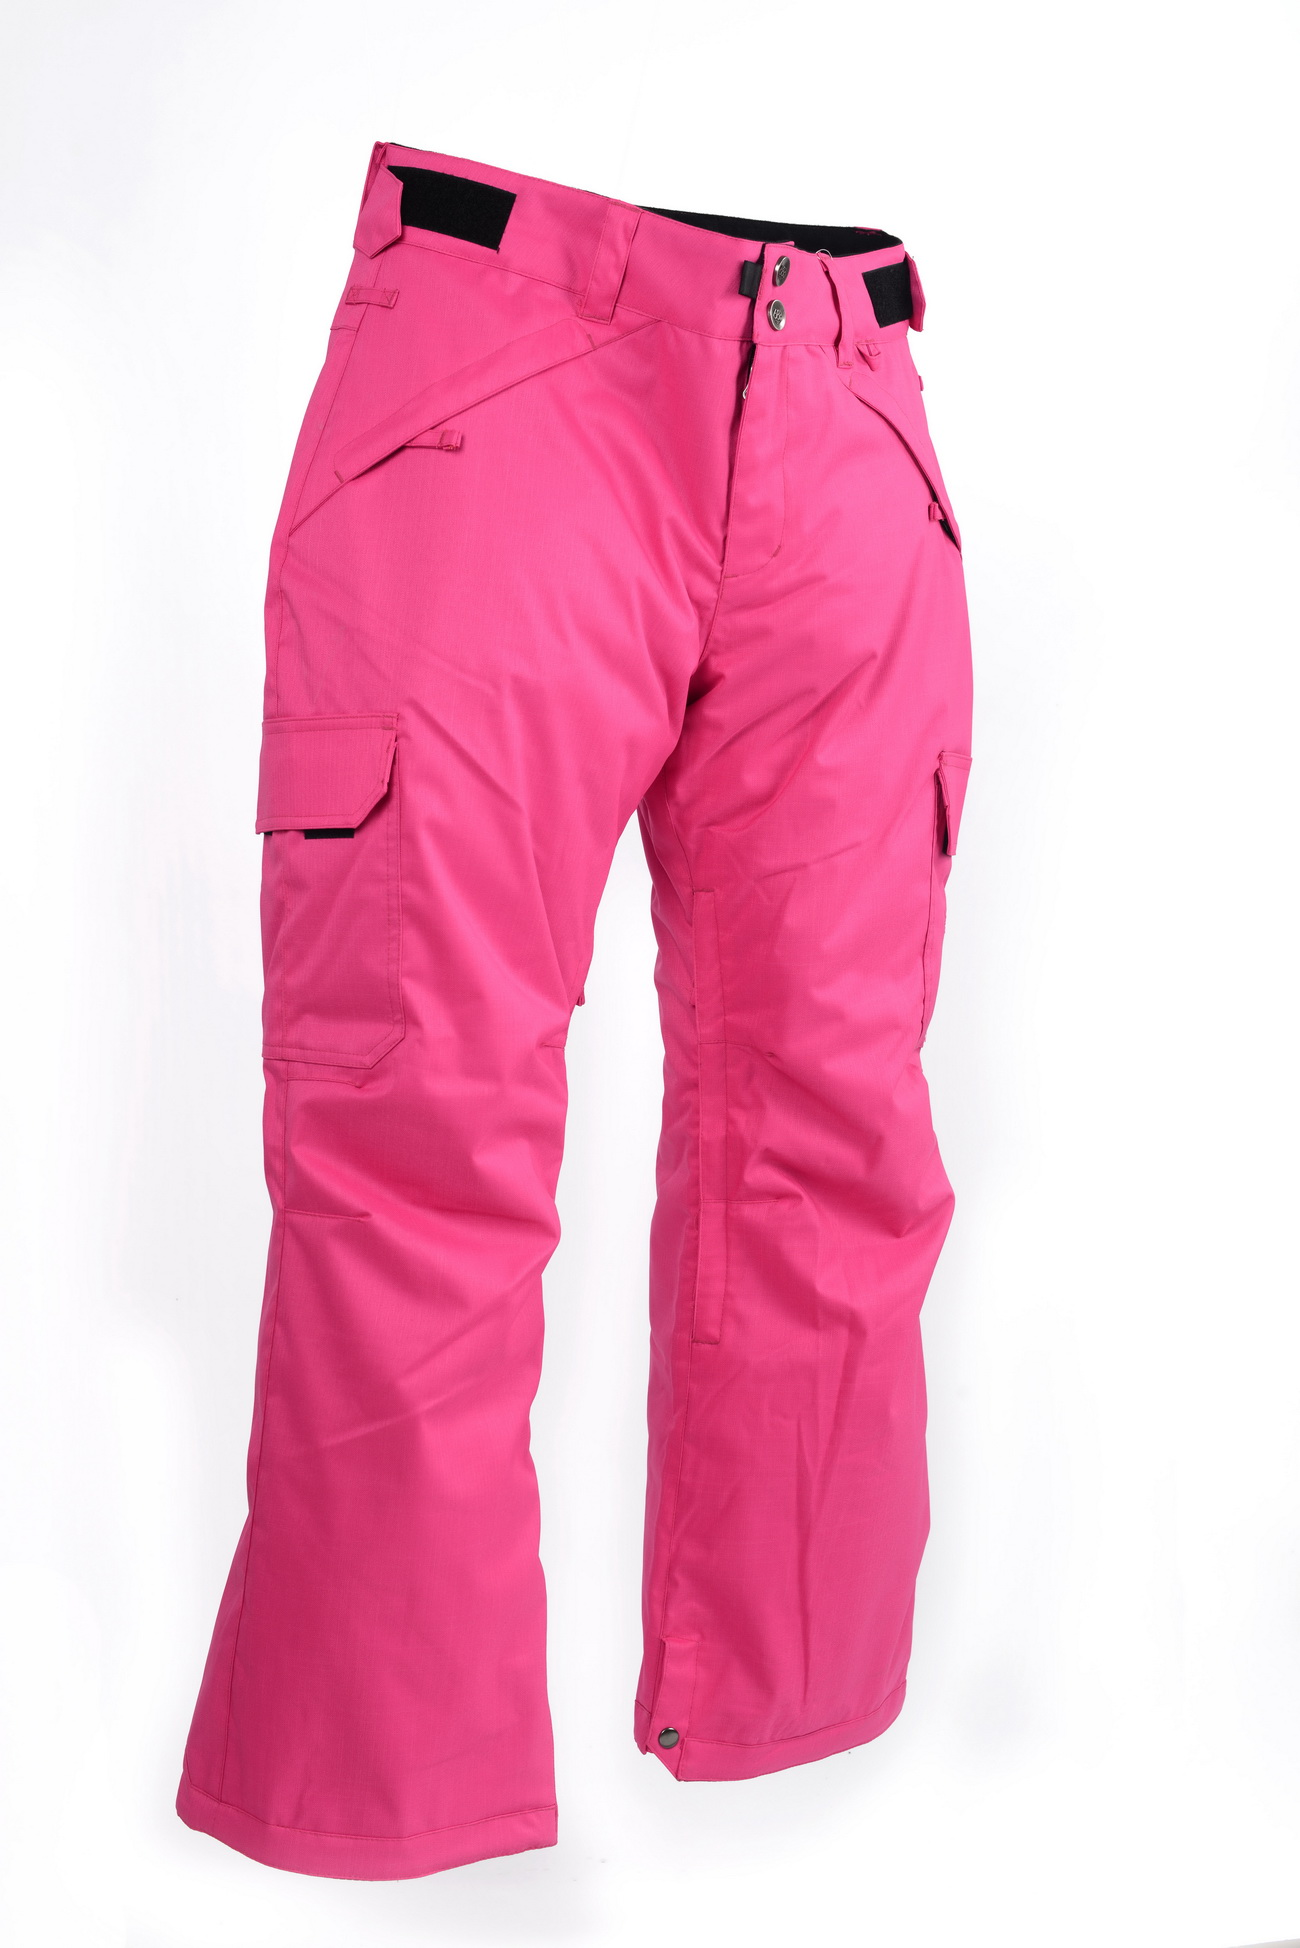 686 Womens Ski & Snowboard Pants  Mannual Spectrum Insulated  pink Pink